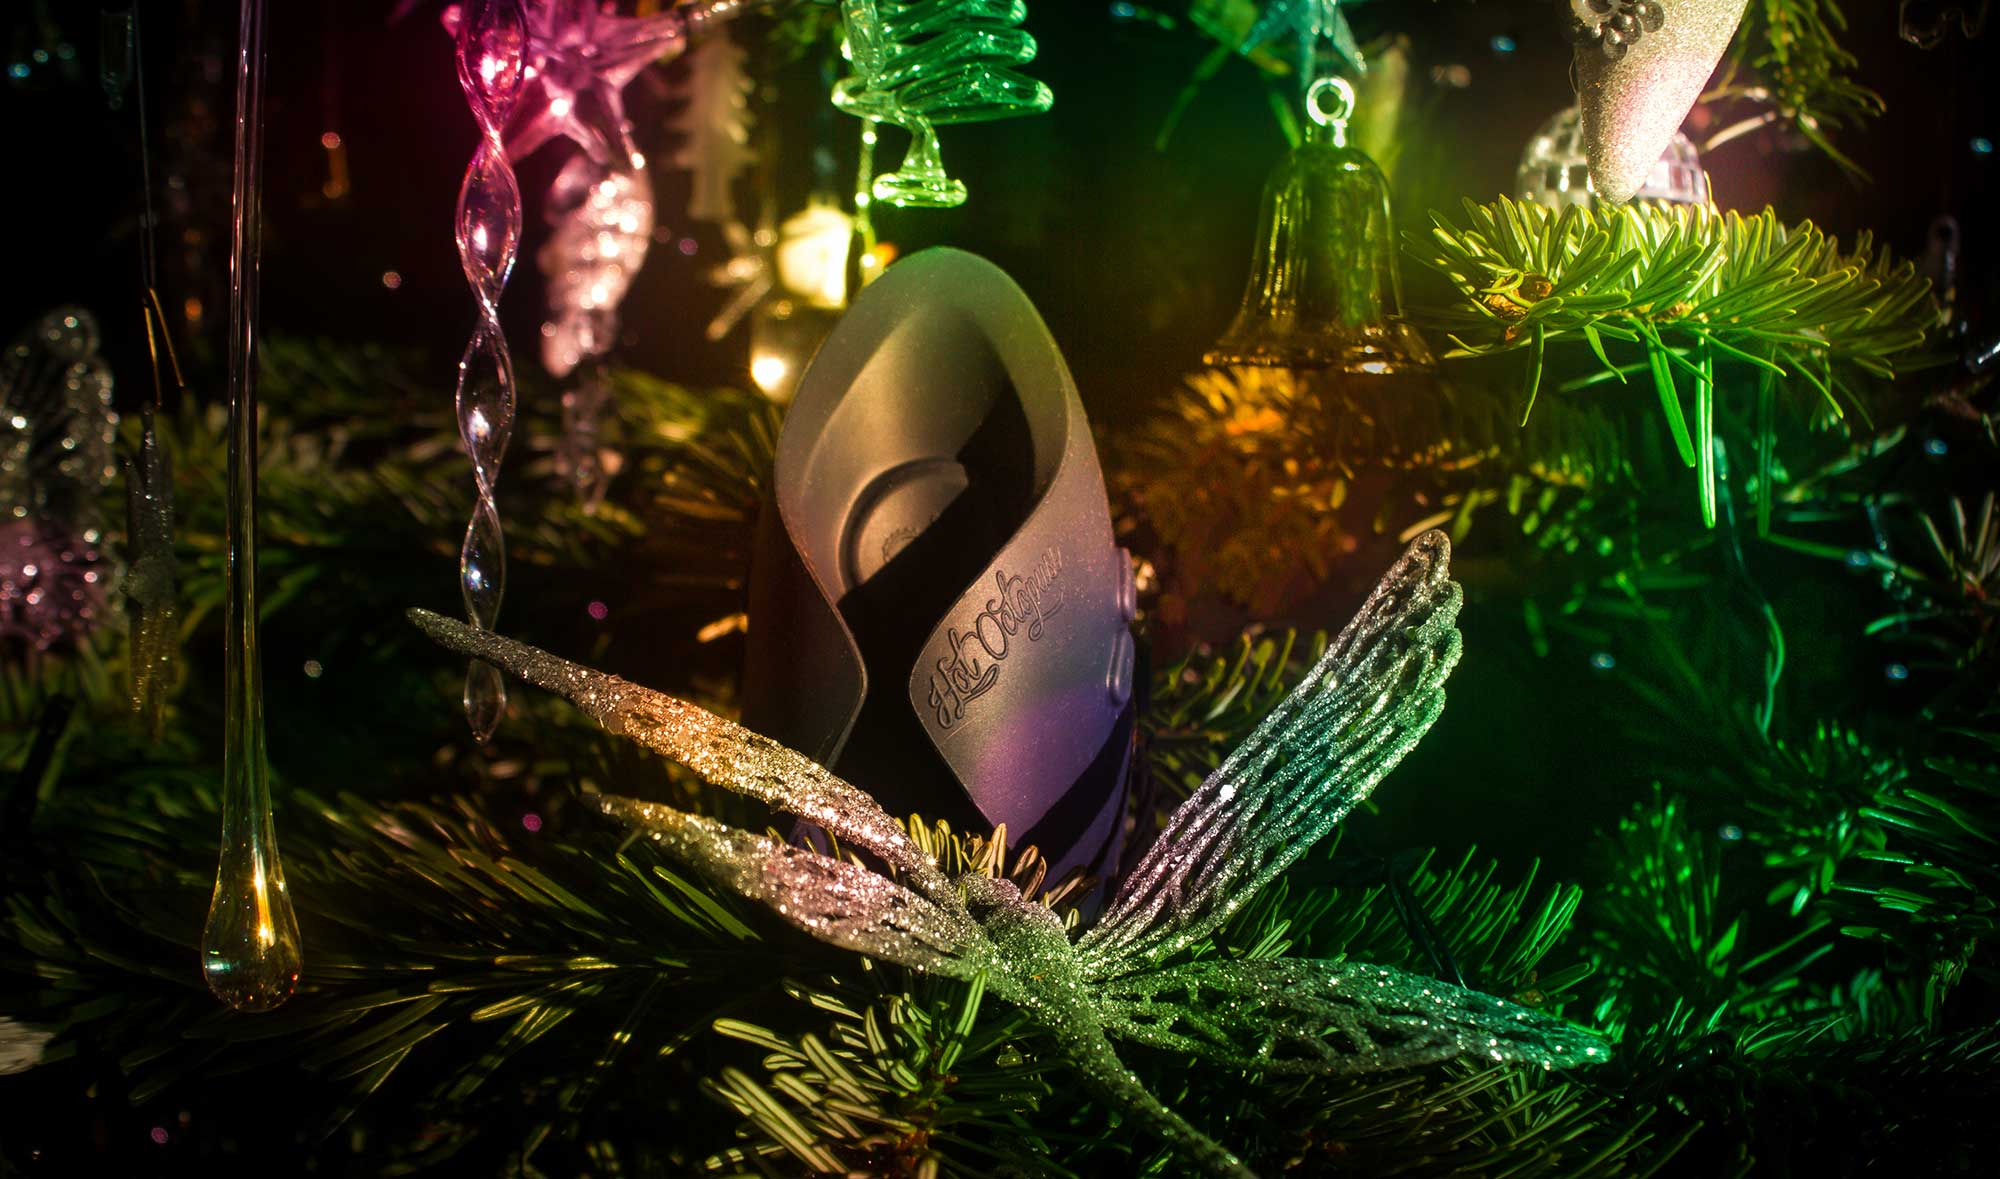 PULSE SOLO Lux hidden in the illuminated Christmas tree